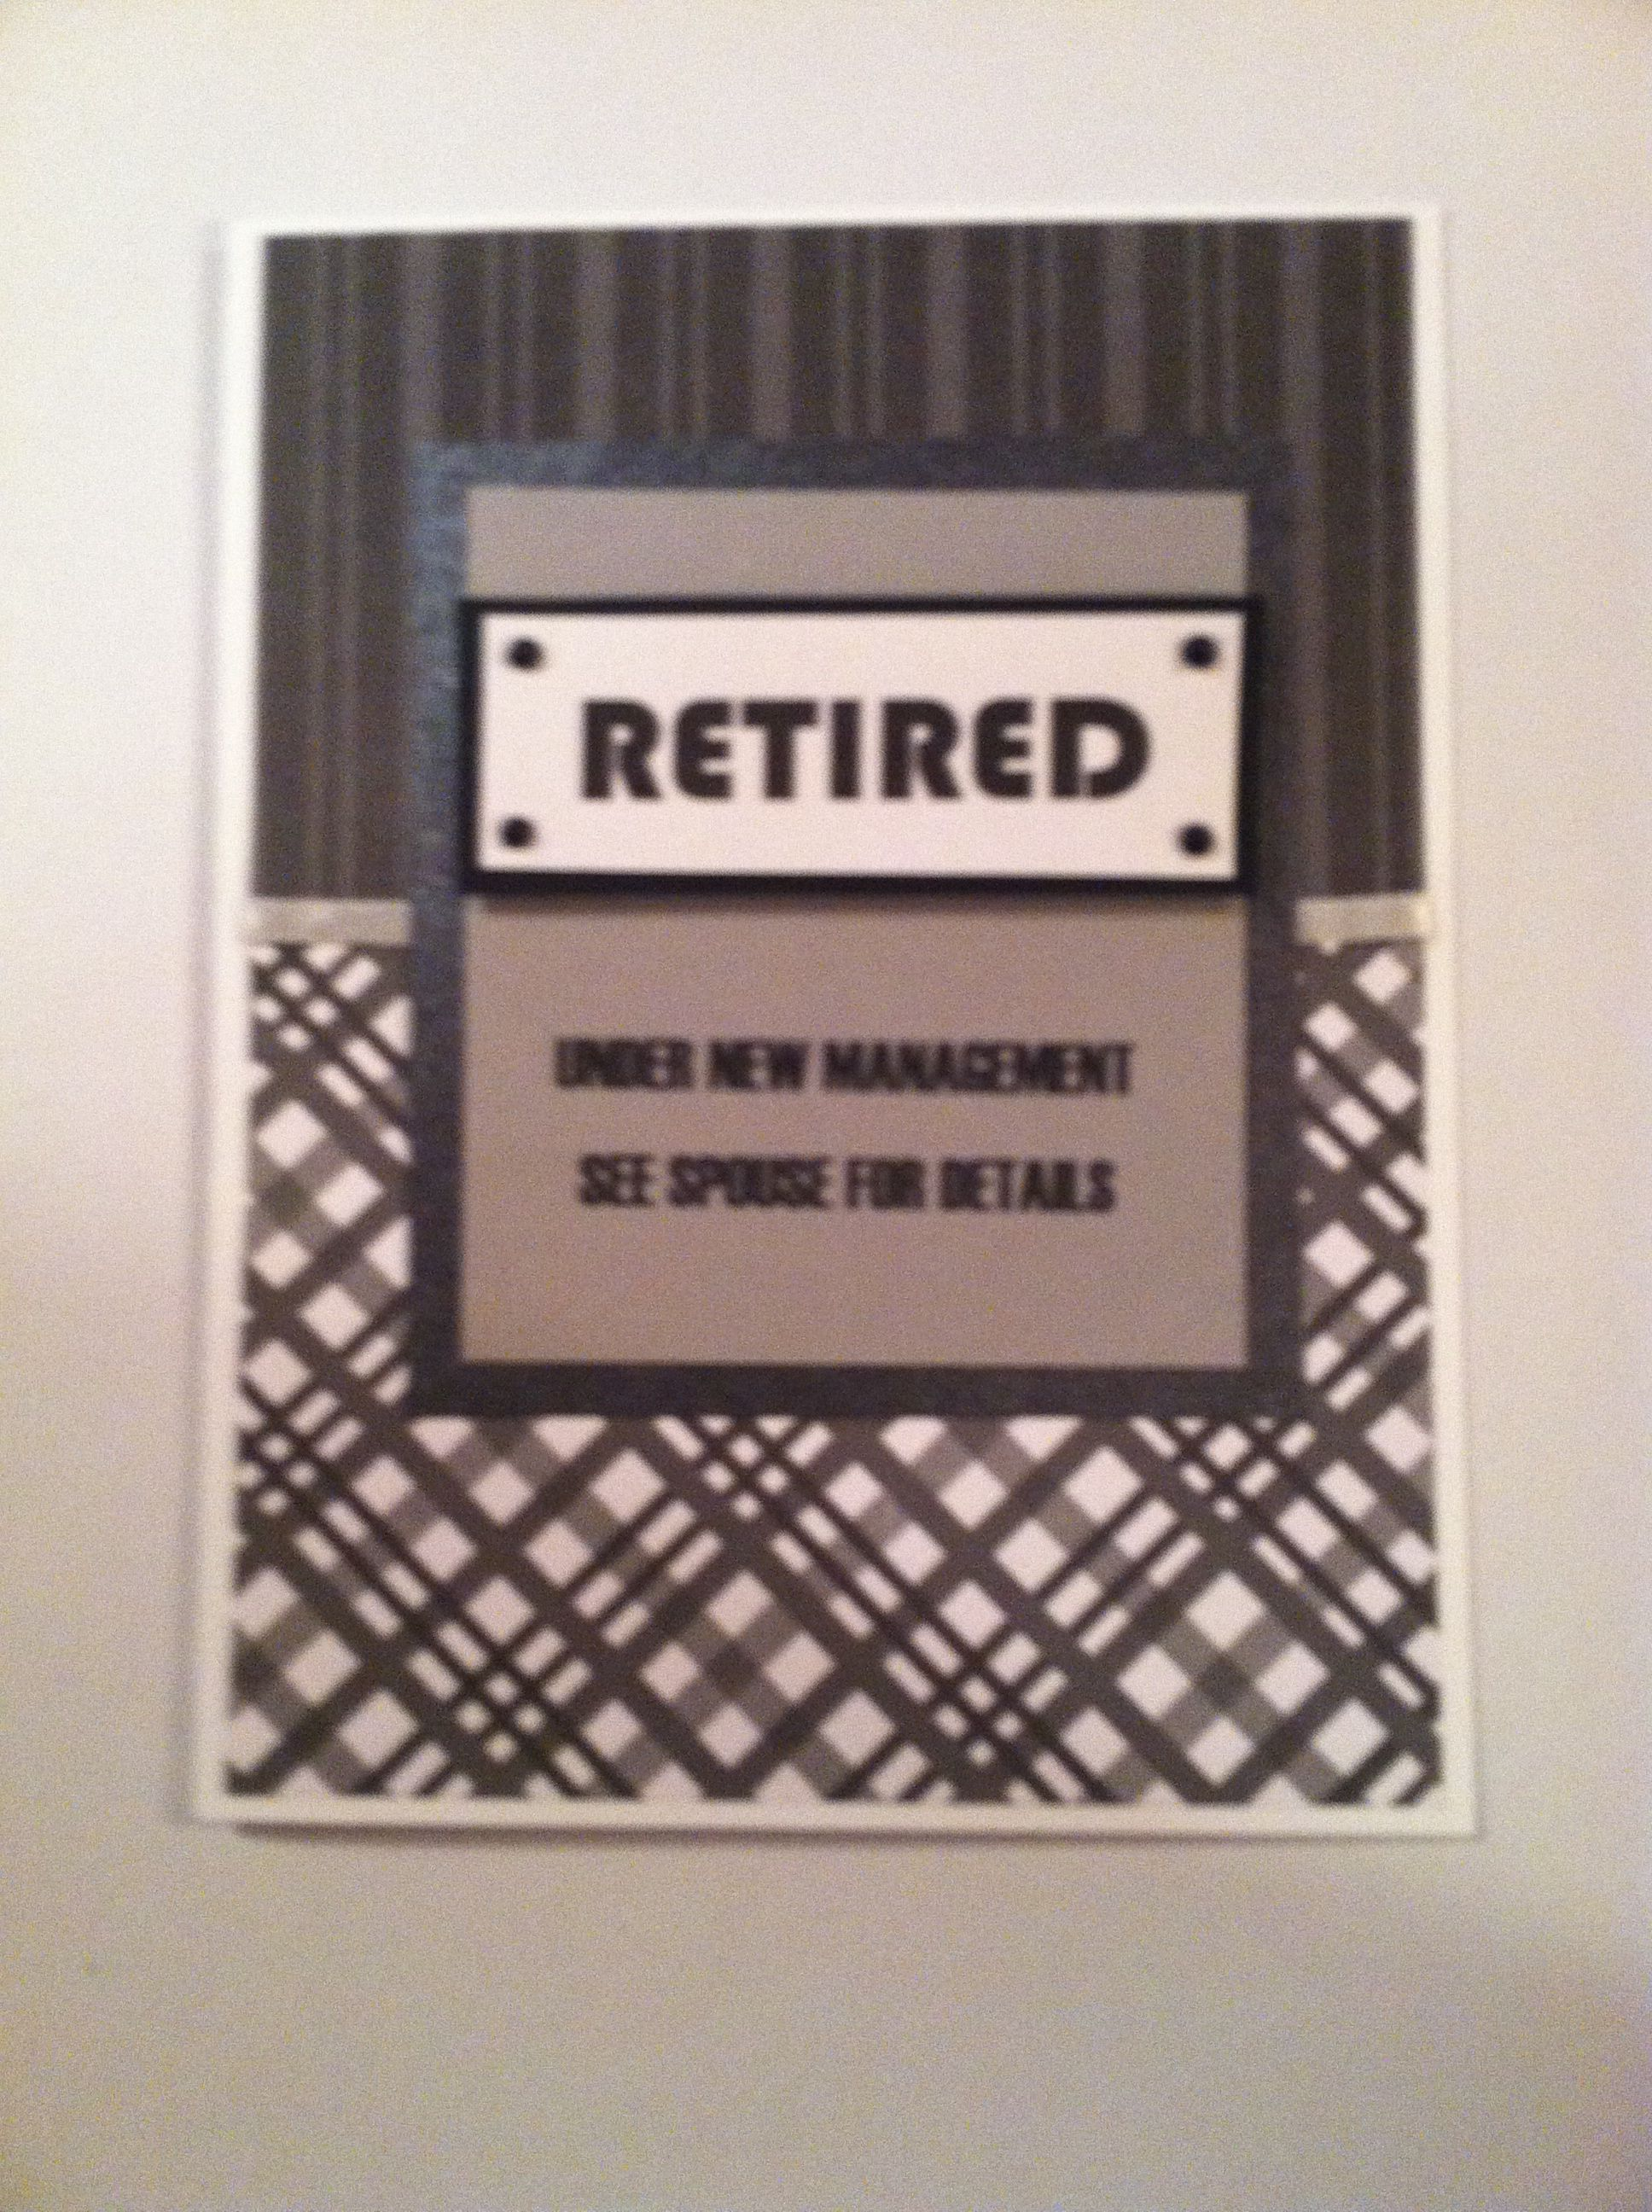 Retirement Card Cards Pinterest Retirement cards Cards and